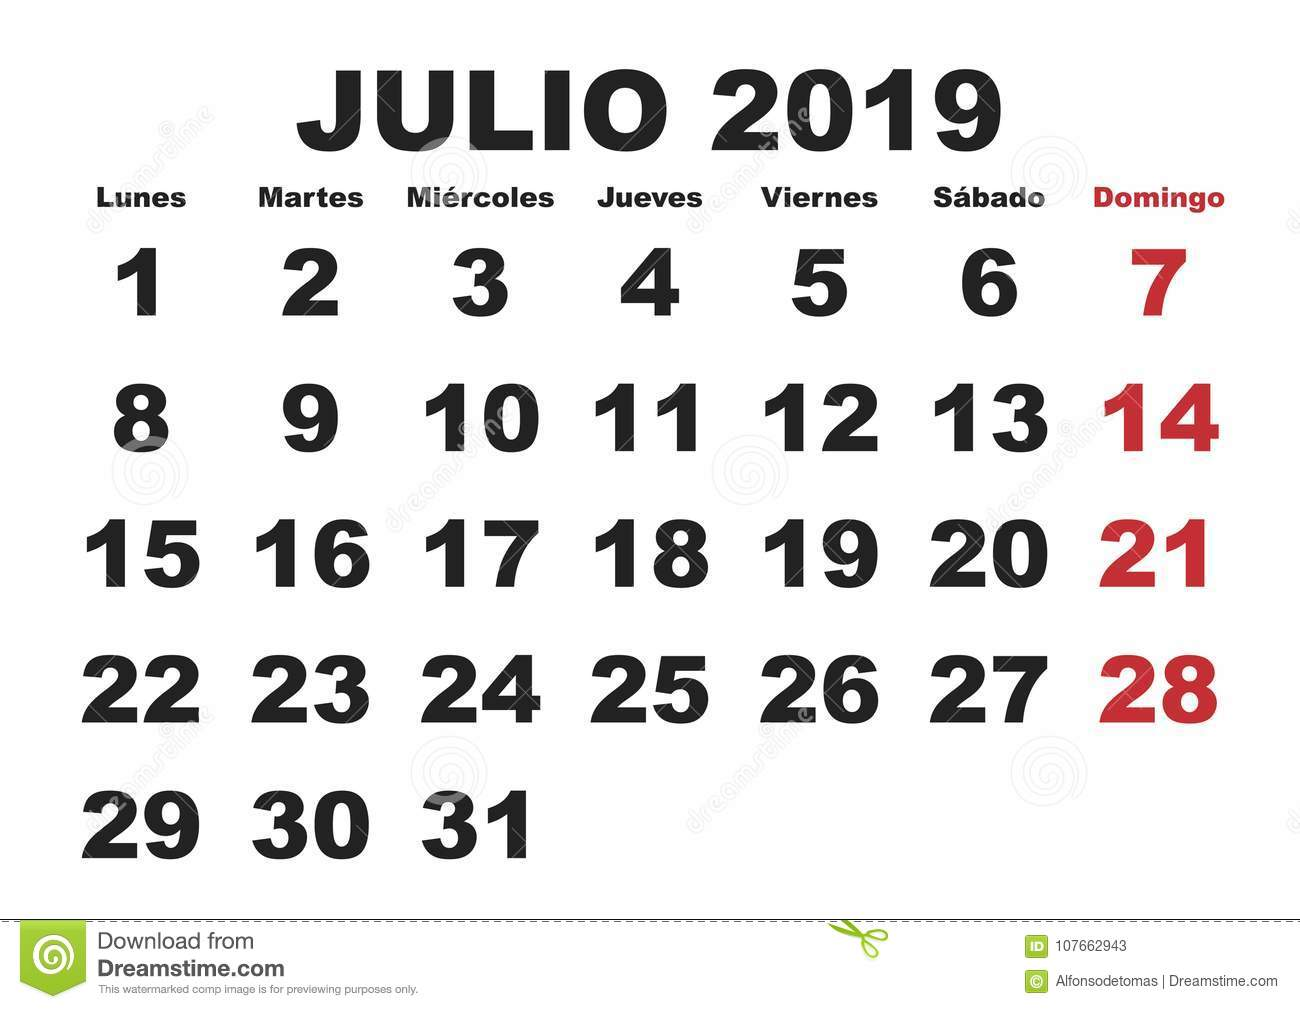 Calendario 2019 Mes A Mes.Julio 2019 Wall Calendar Spanish Stock Vector Illustration Of